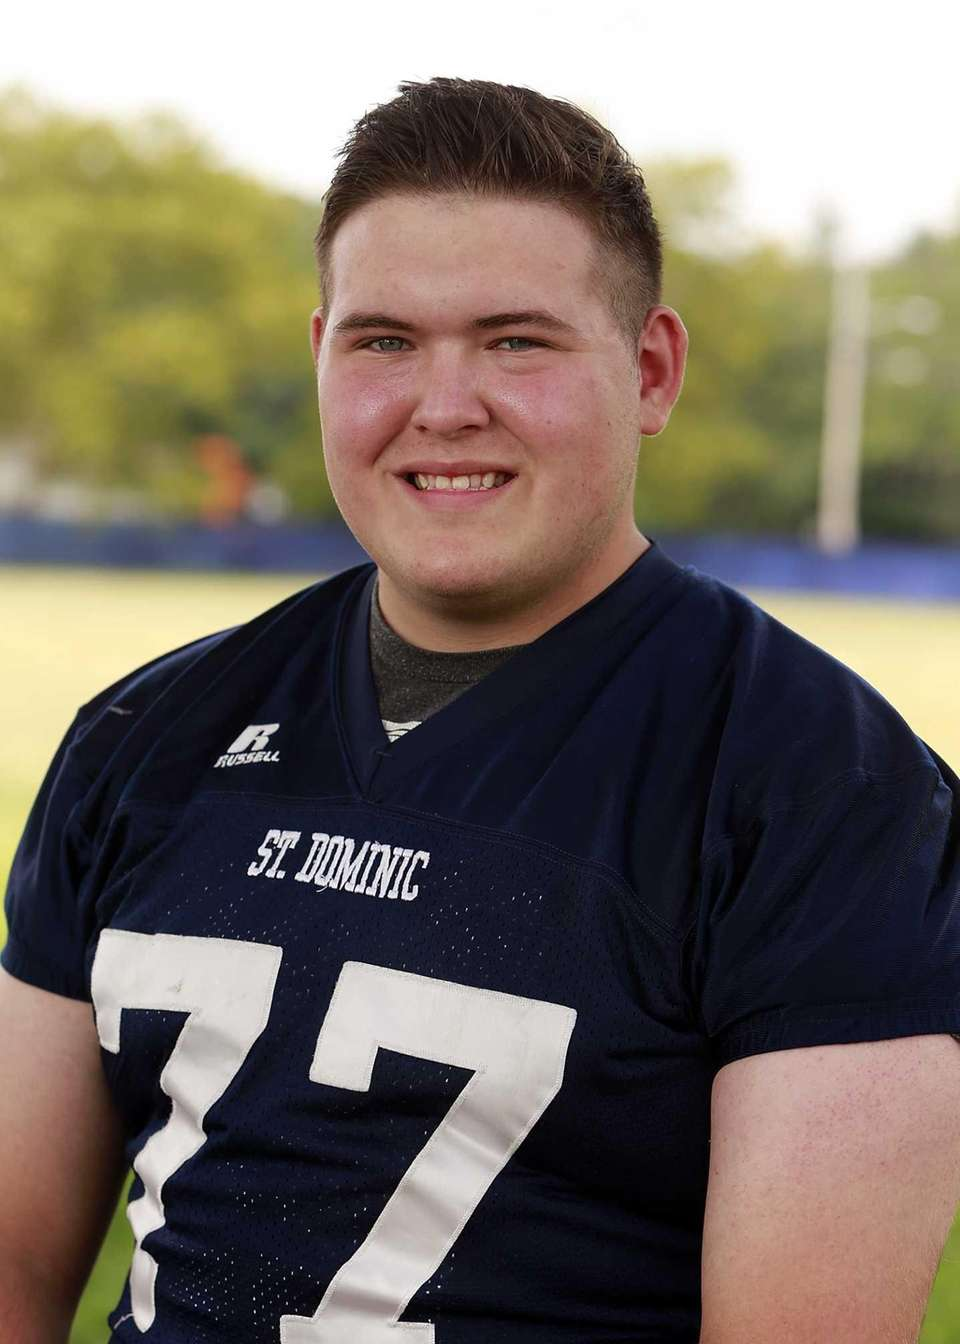 St. Dominic, senior Offensive lineman/defensive lineman Dan Isaacs